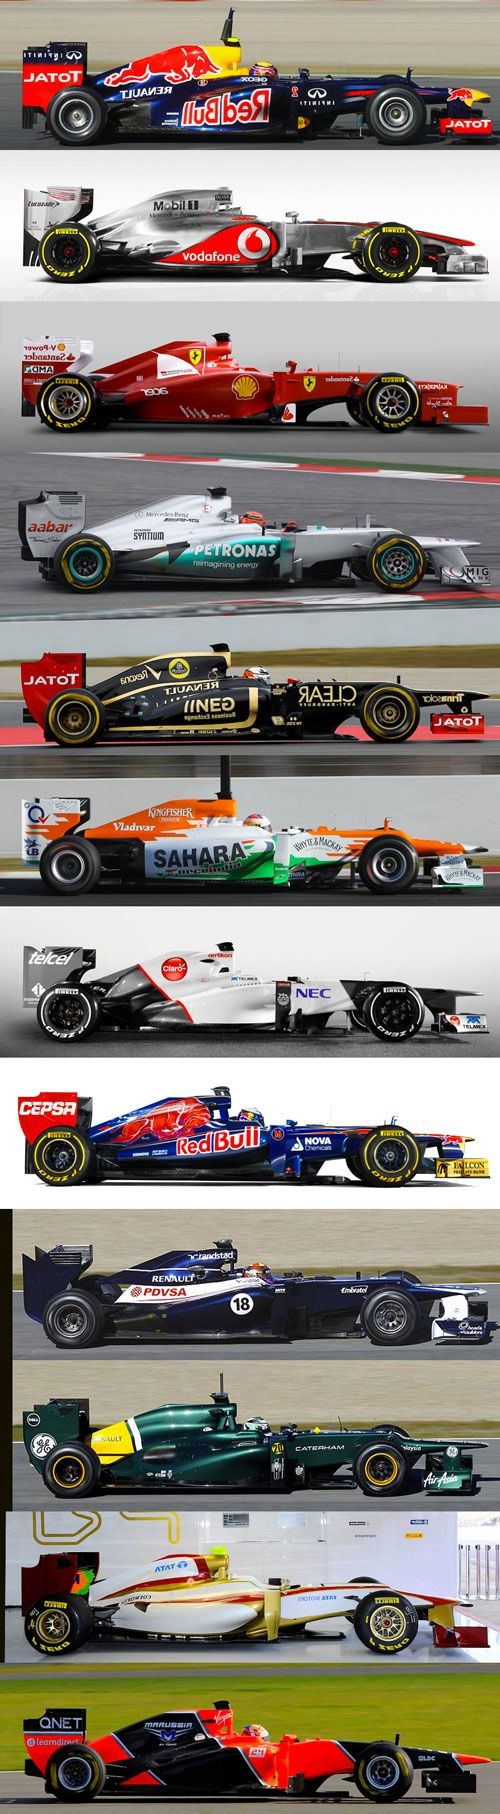 You will ❤ MACHINE Shop Café... ❤ Best of Racing @ MACHINE ❤ (Teams from the 2012 F1 Season)